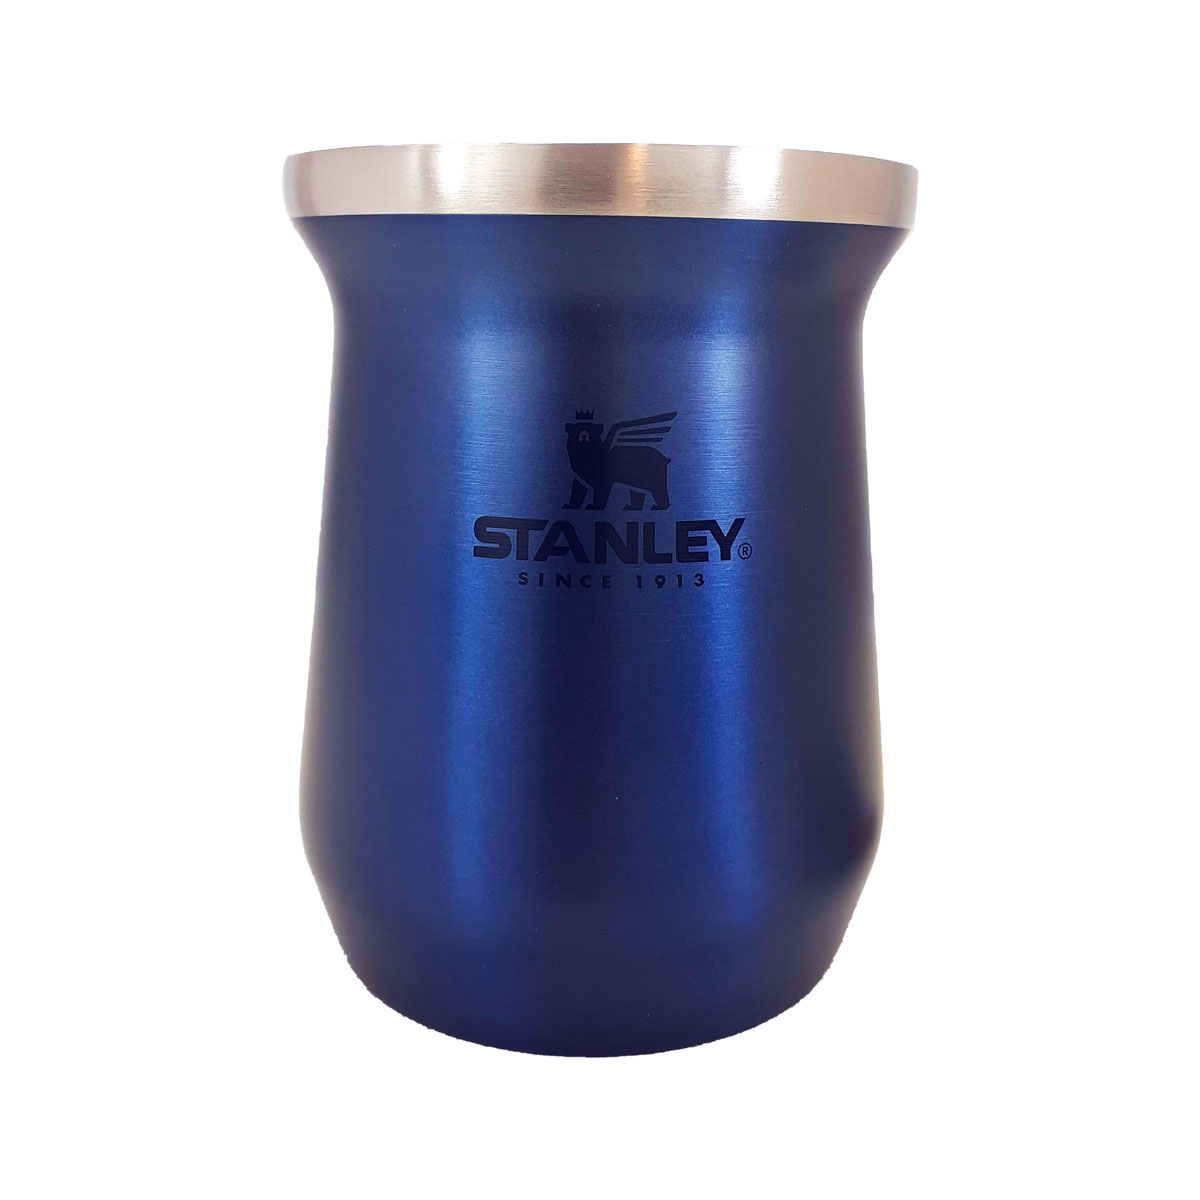 Mate Stanley Classic 9628A